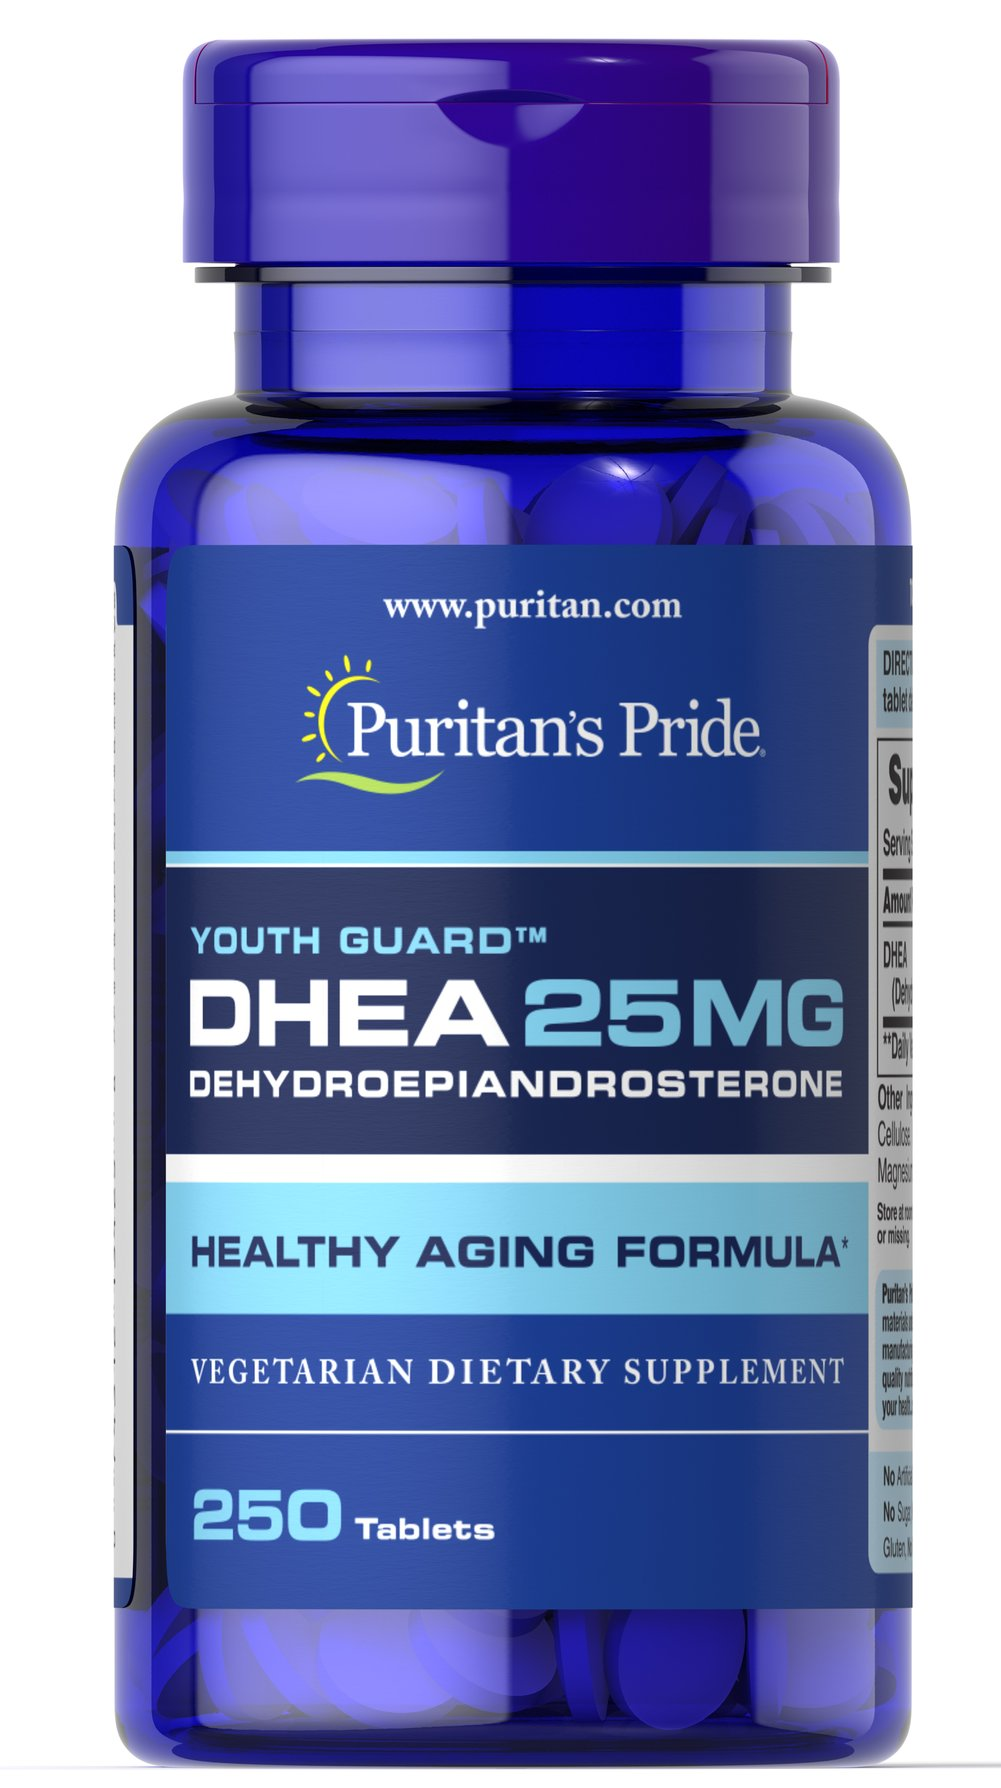 DHEA 25 mg <p>DHEA (Dehydroepiandrosterone) is made by the adrenal glands, which are located just above the kidneys and liver.  Levels of DHEA can decline with age.  Adults can take one tablet daily with a meal.</p> 250 Tablets 25 mg $21.99